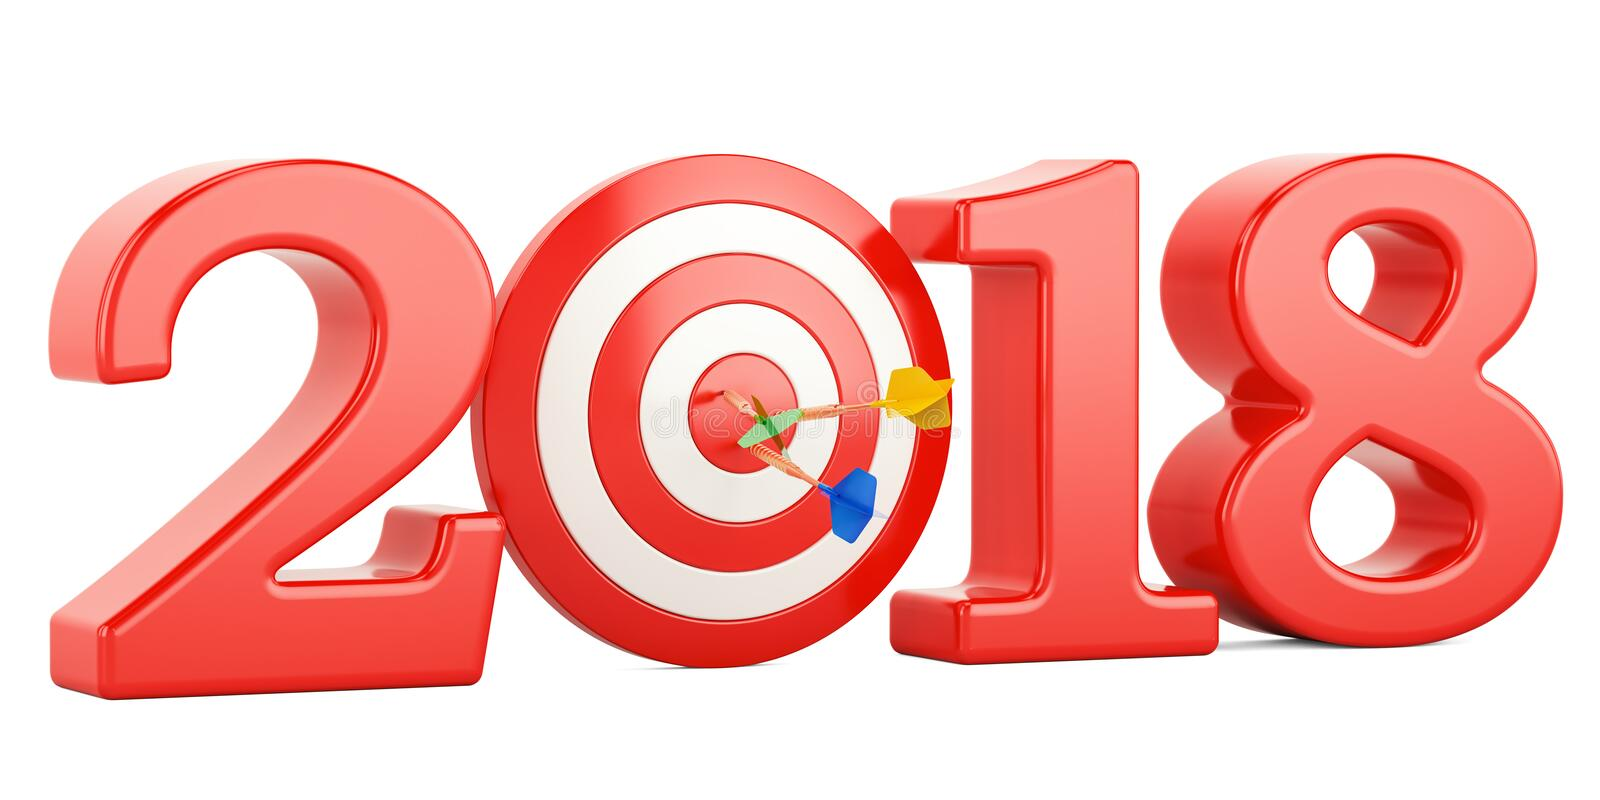 Target and mission of 2018 New Year concept, 3D rendering stock illustration